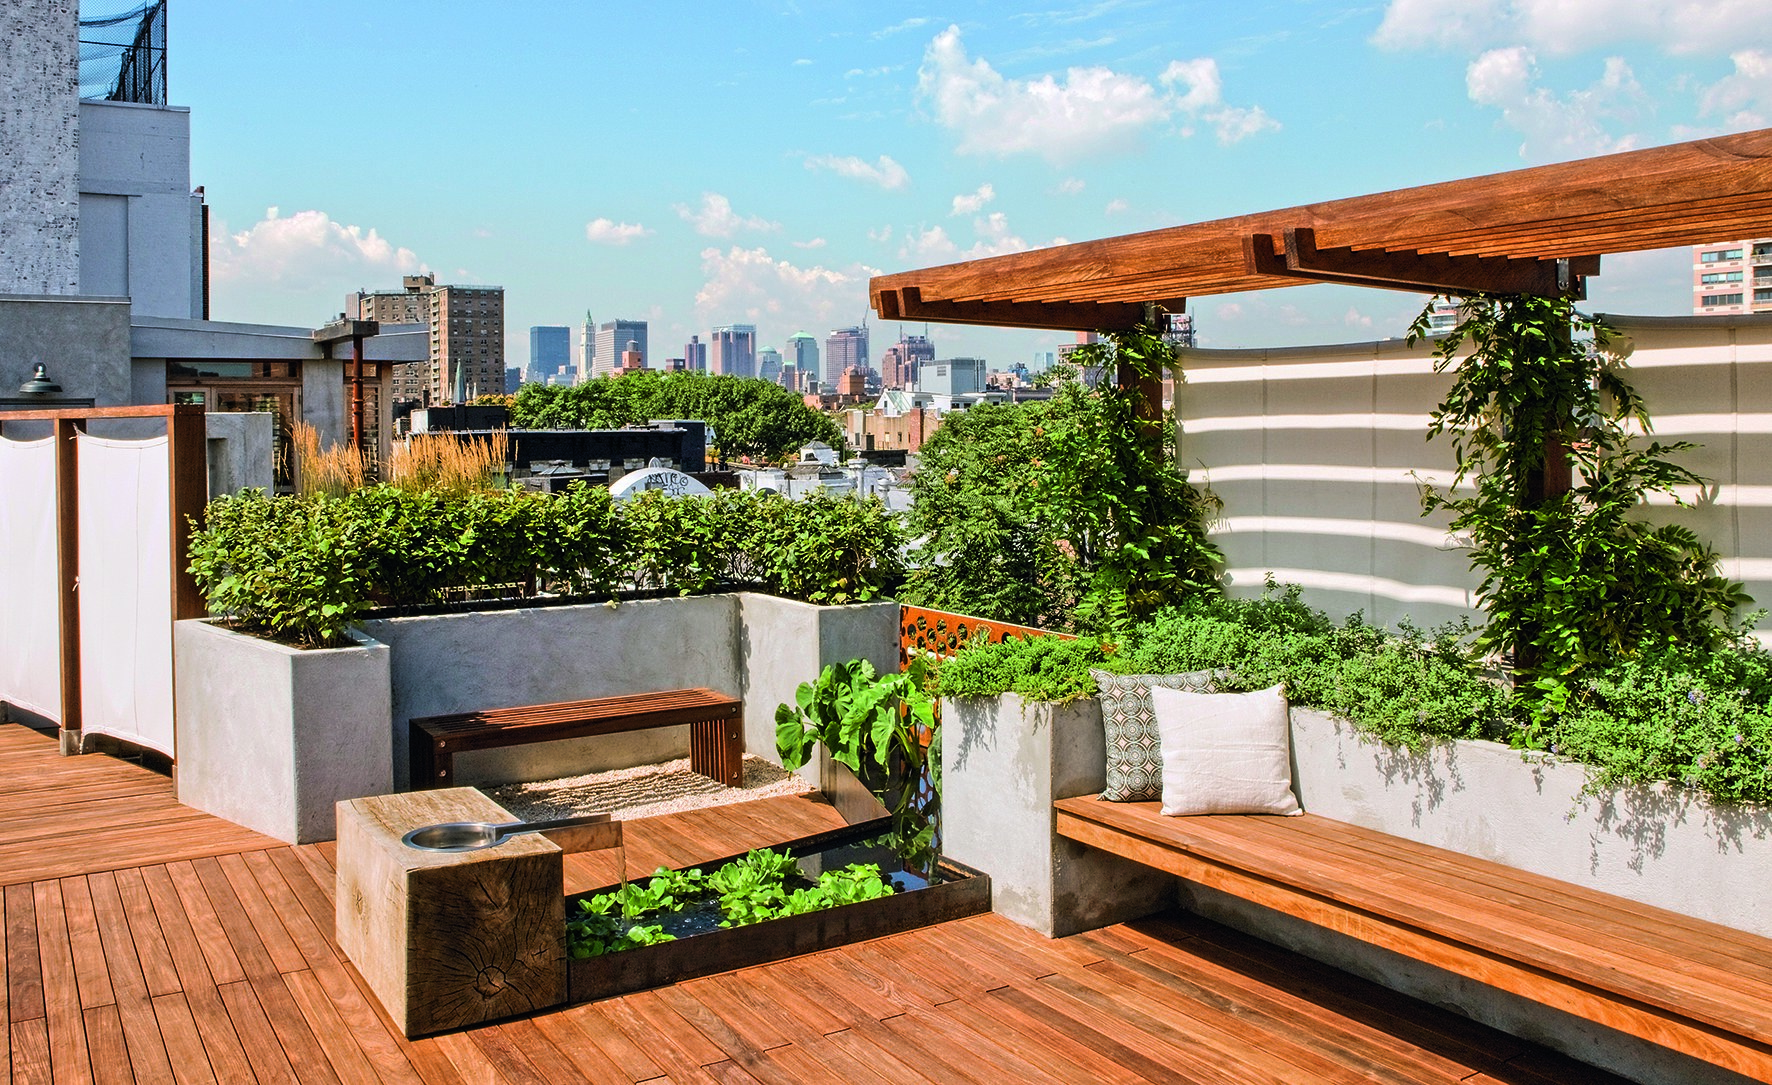 roof garden 9 remarkable rooftop garden designs around the world photos | architectural IUNSAWZ